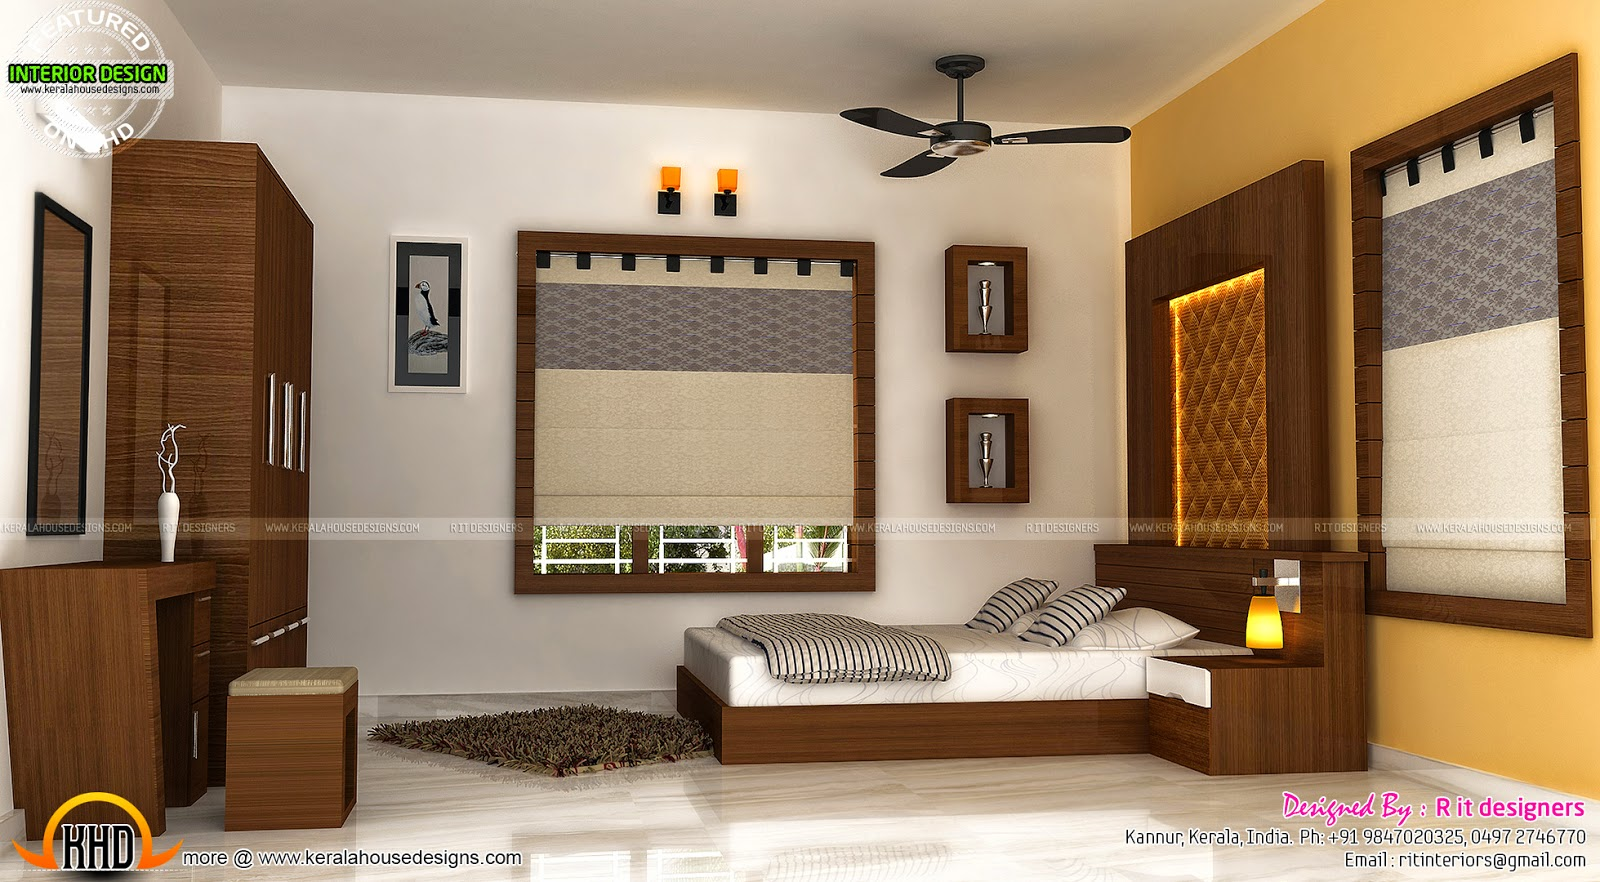 Staircase bedroom dining interiors kerala home design for Kerala house living room interior design